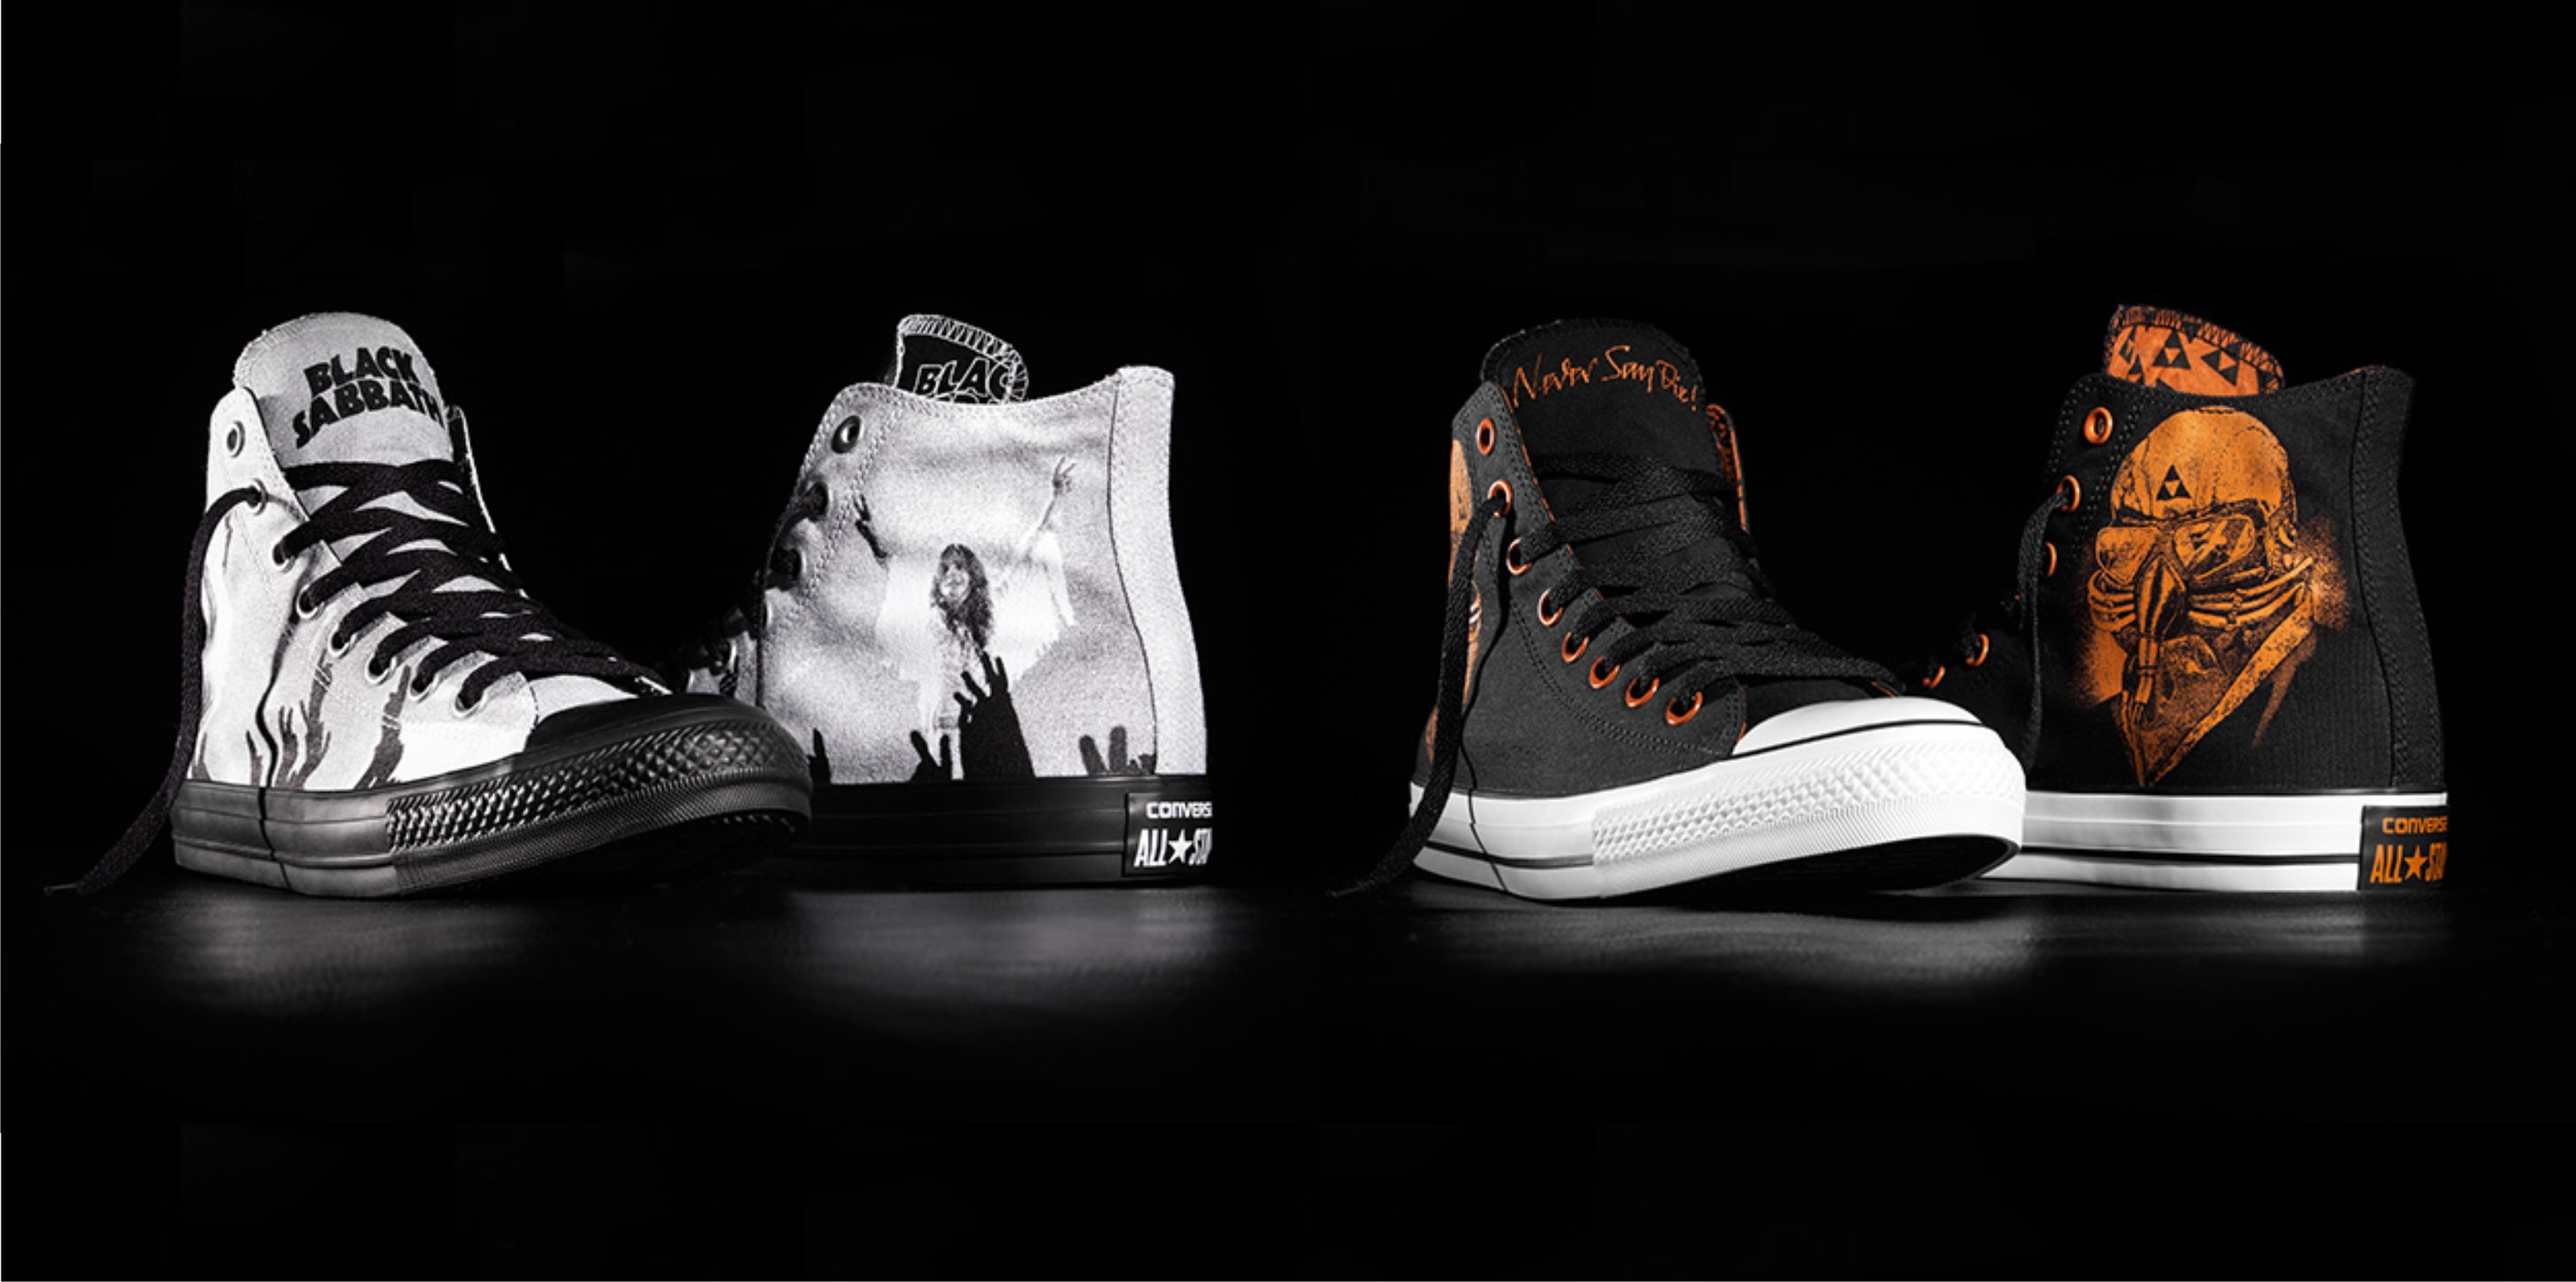 The new Converse Chuck Taylor All Star Black Sabbath sneaker is available in South Africa